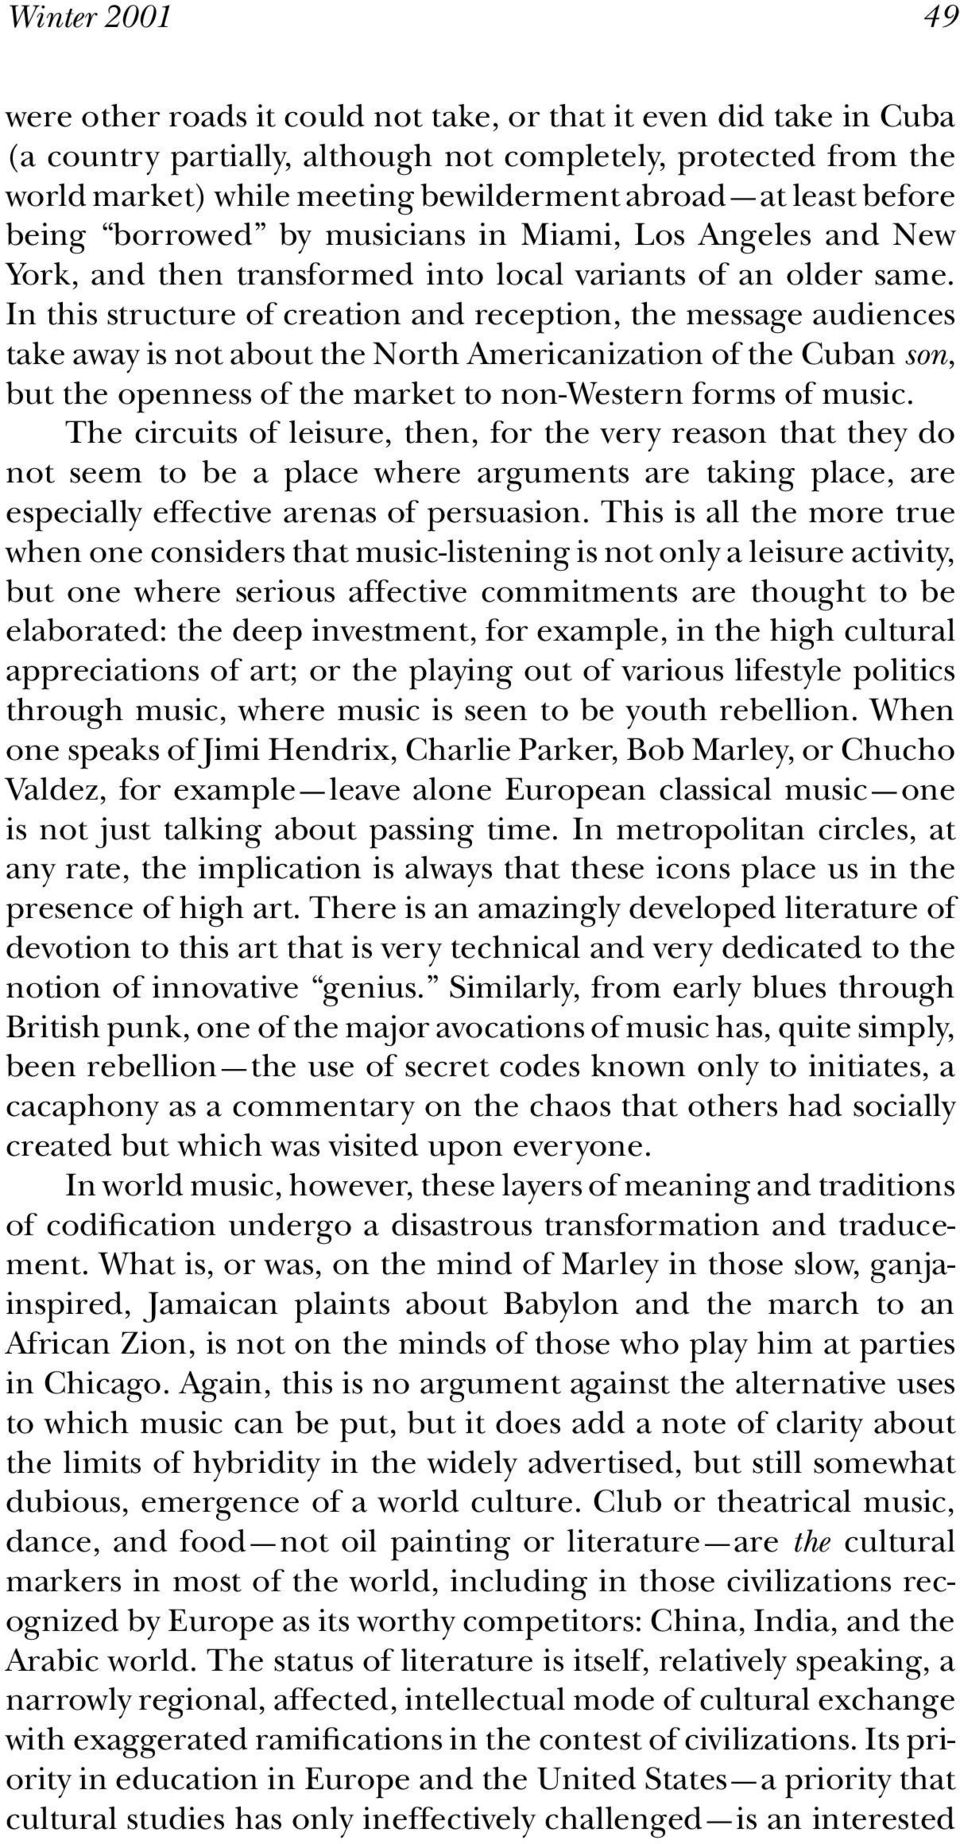 In this structure of creation and reception, the message audiences take away is not about the North Americanization of the Cuban son, but the openness of the market to non-western forms of music.